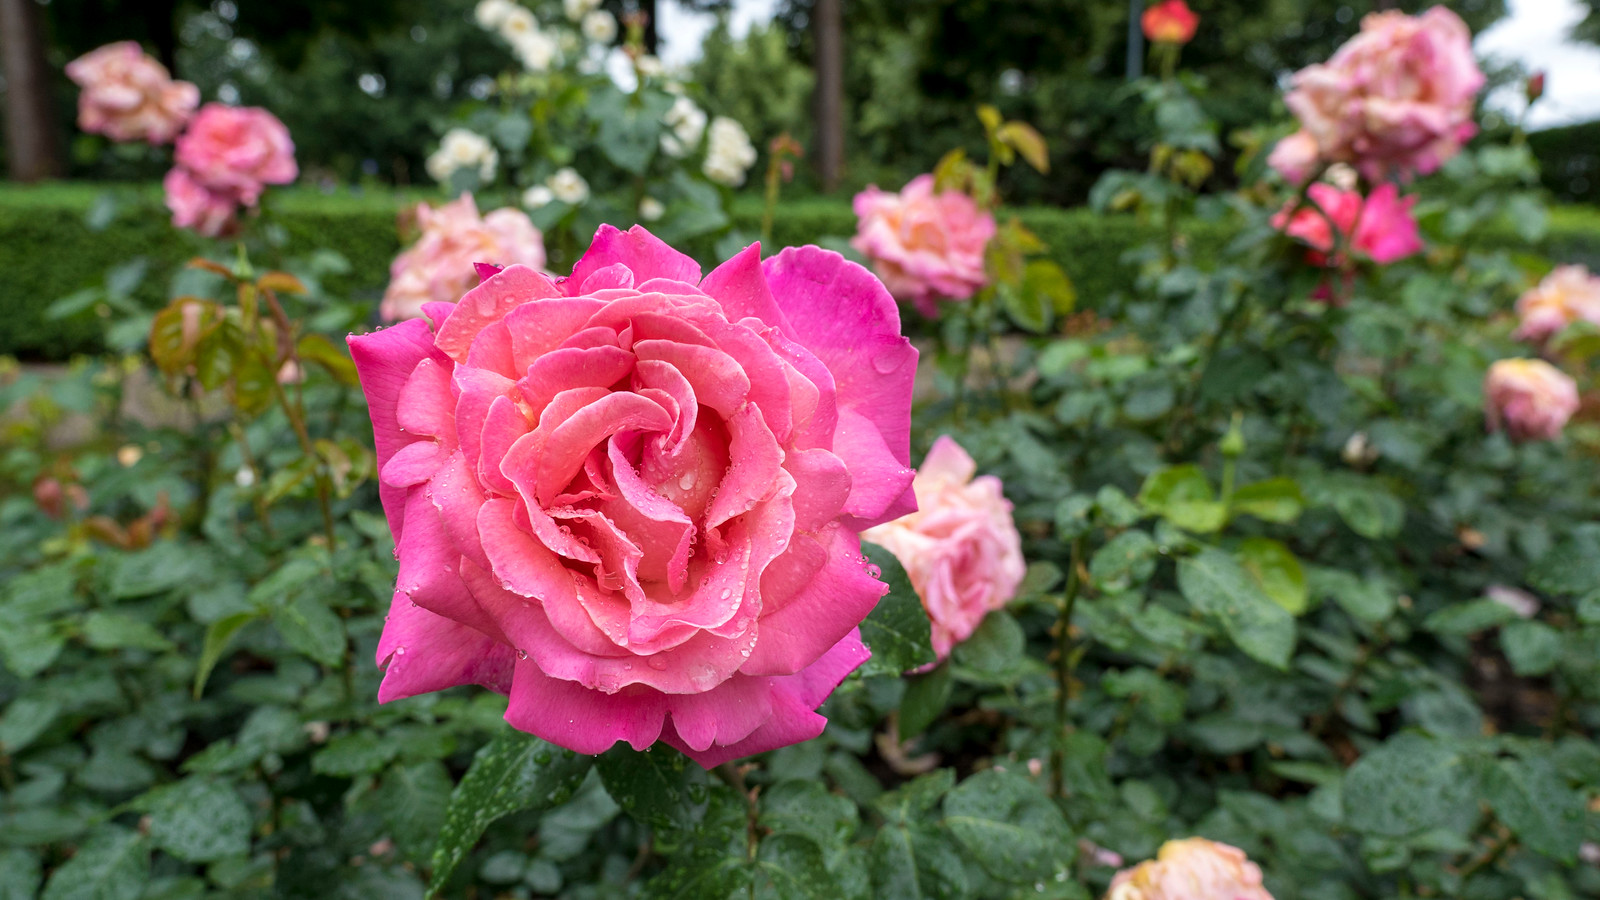 5 Spectacular Things to Do in Bern Switzerland - The Rose Garden - Rosengarten